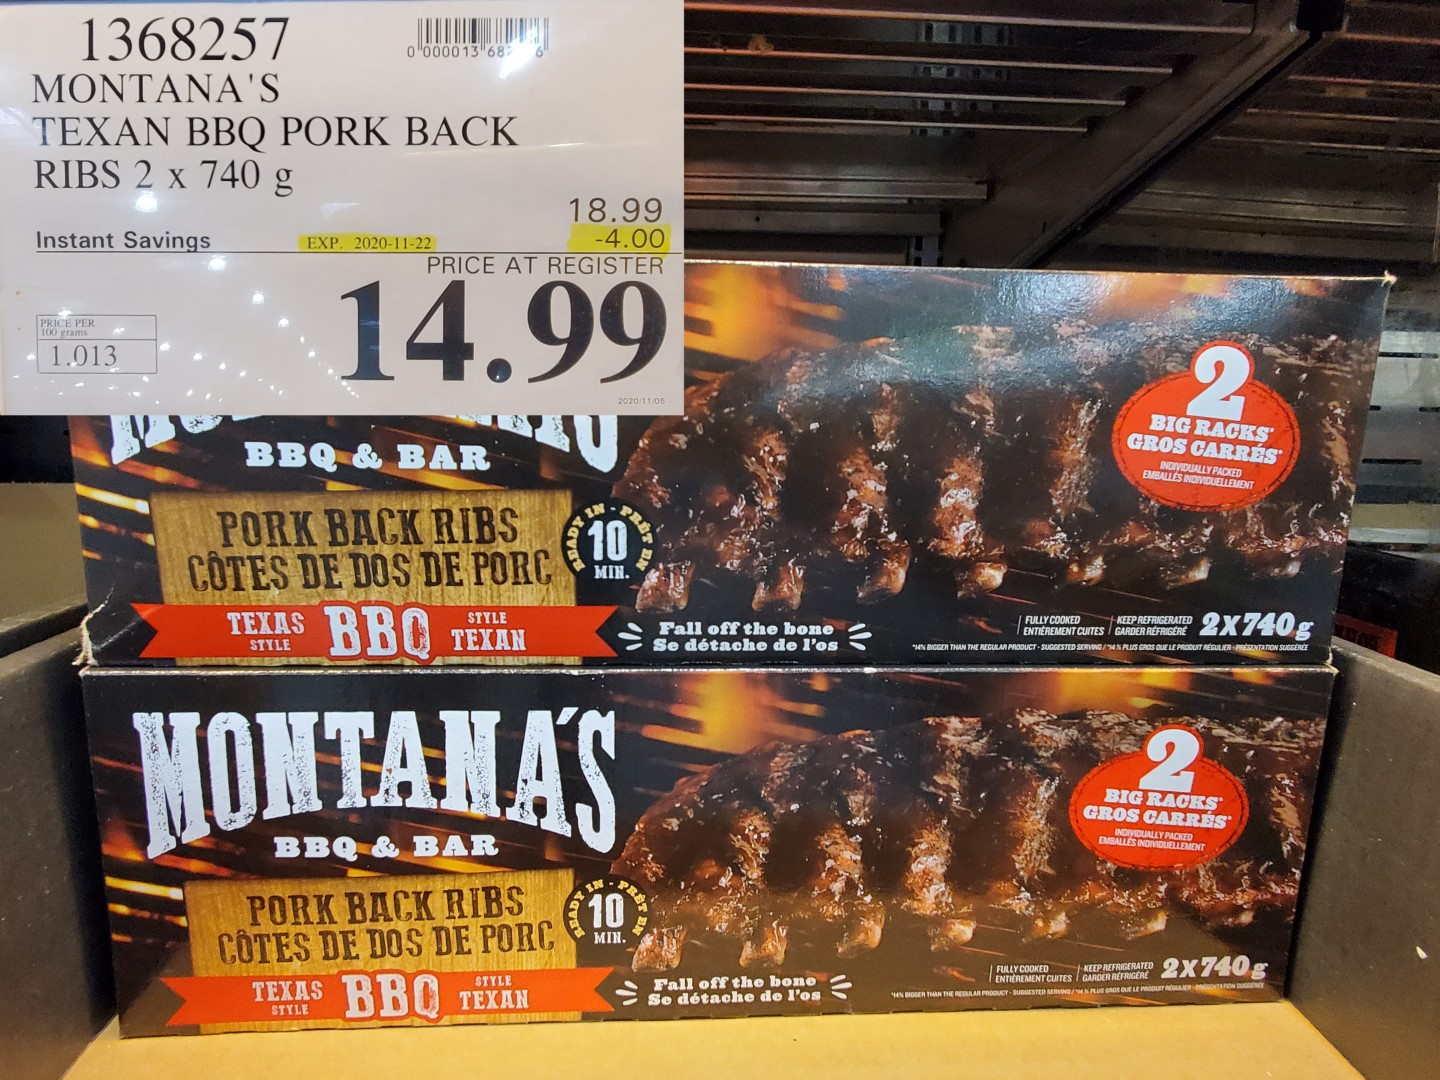 Montanas Texan BBQ pork back ribs